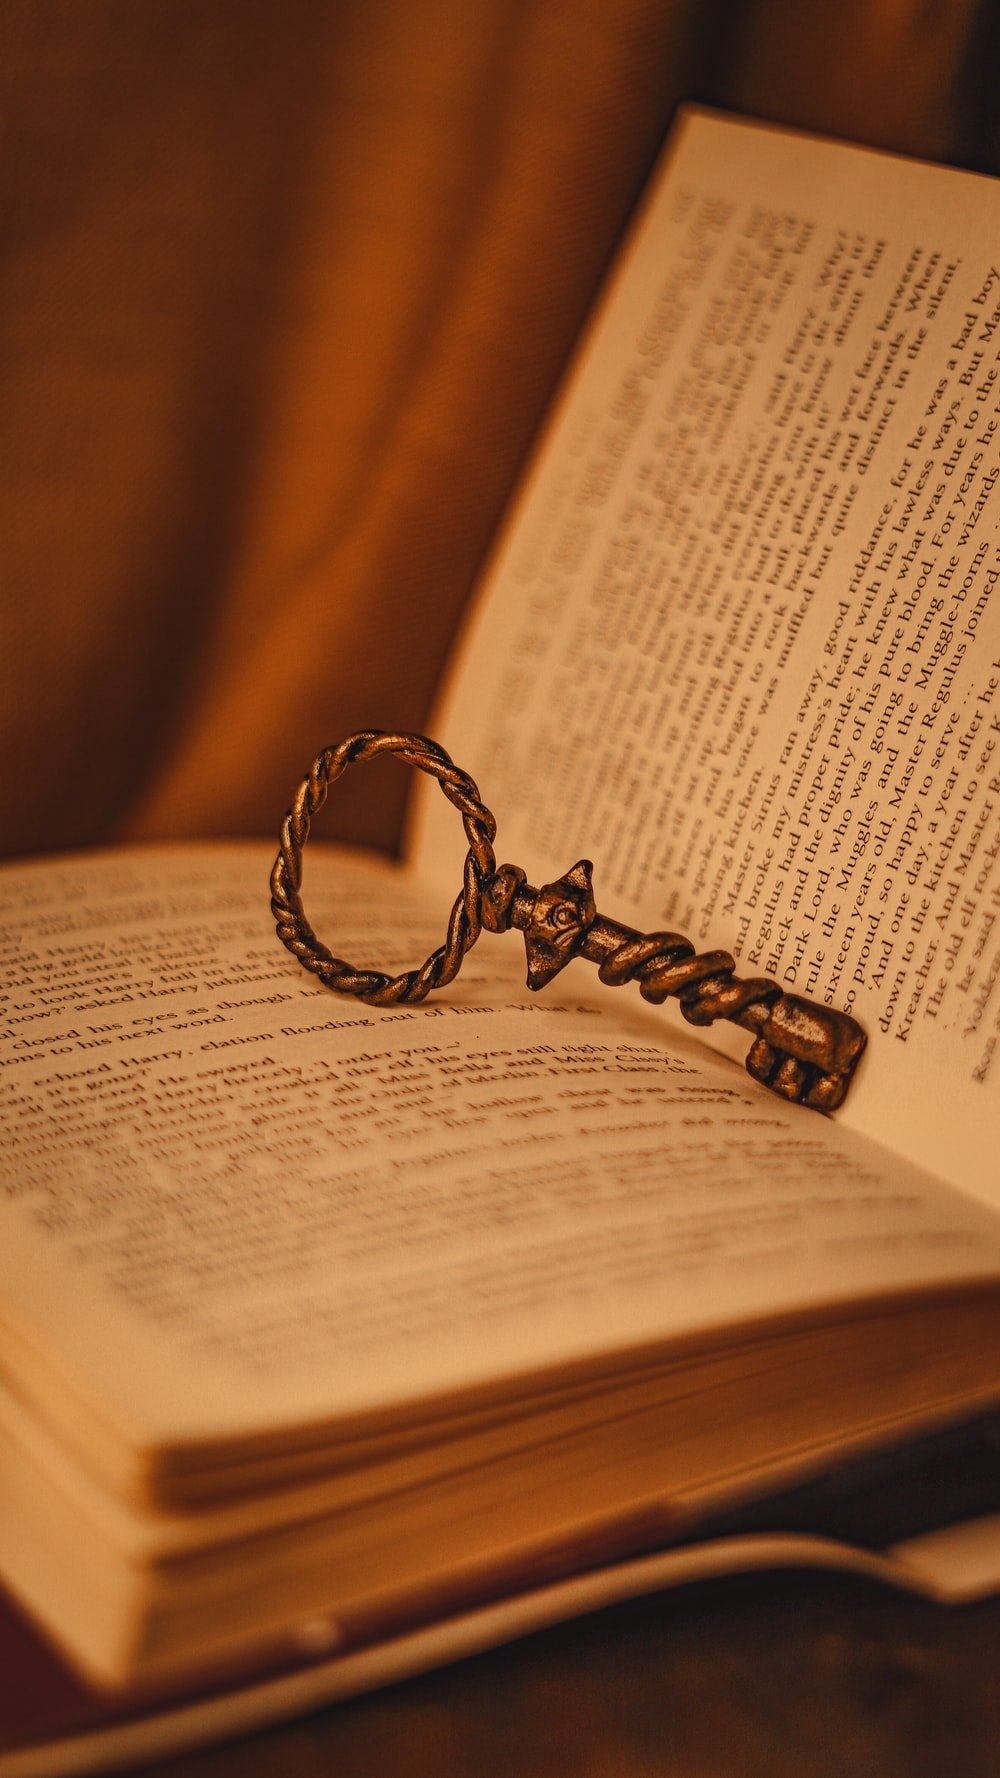 silver ring on book page